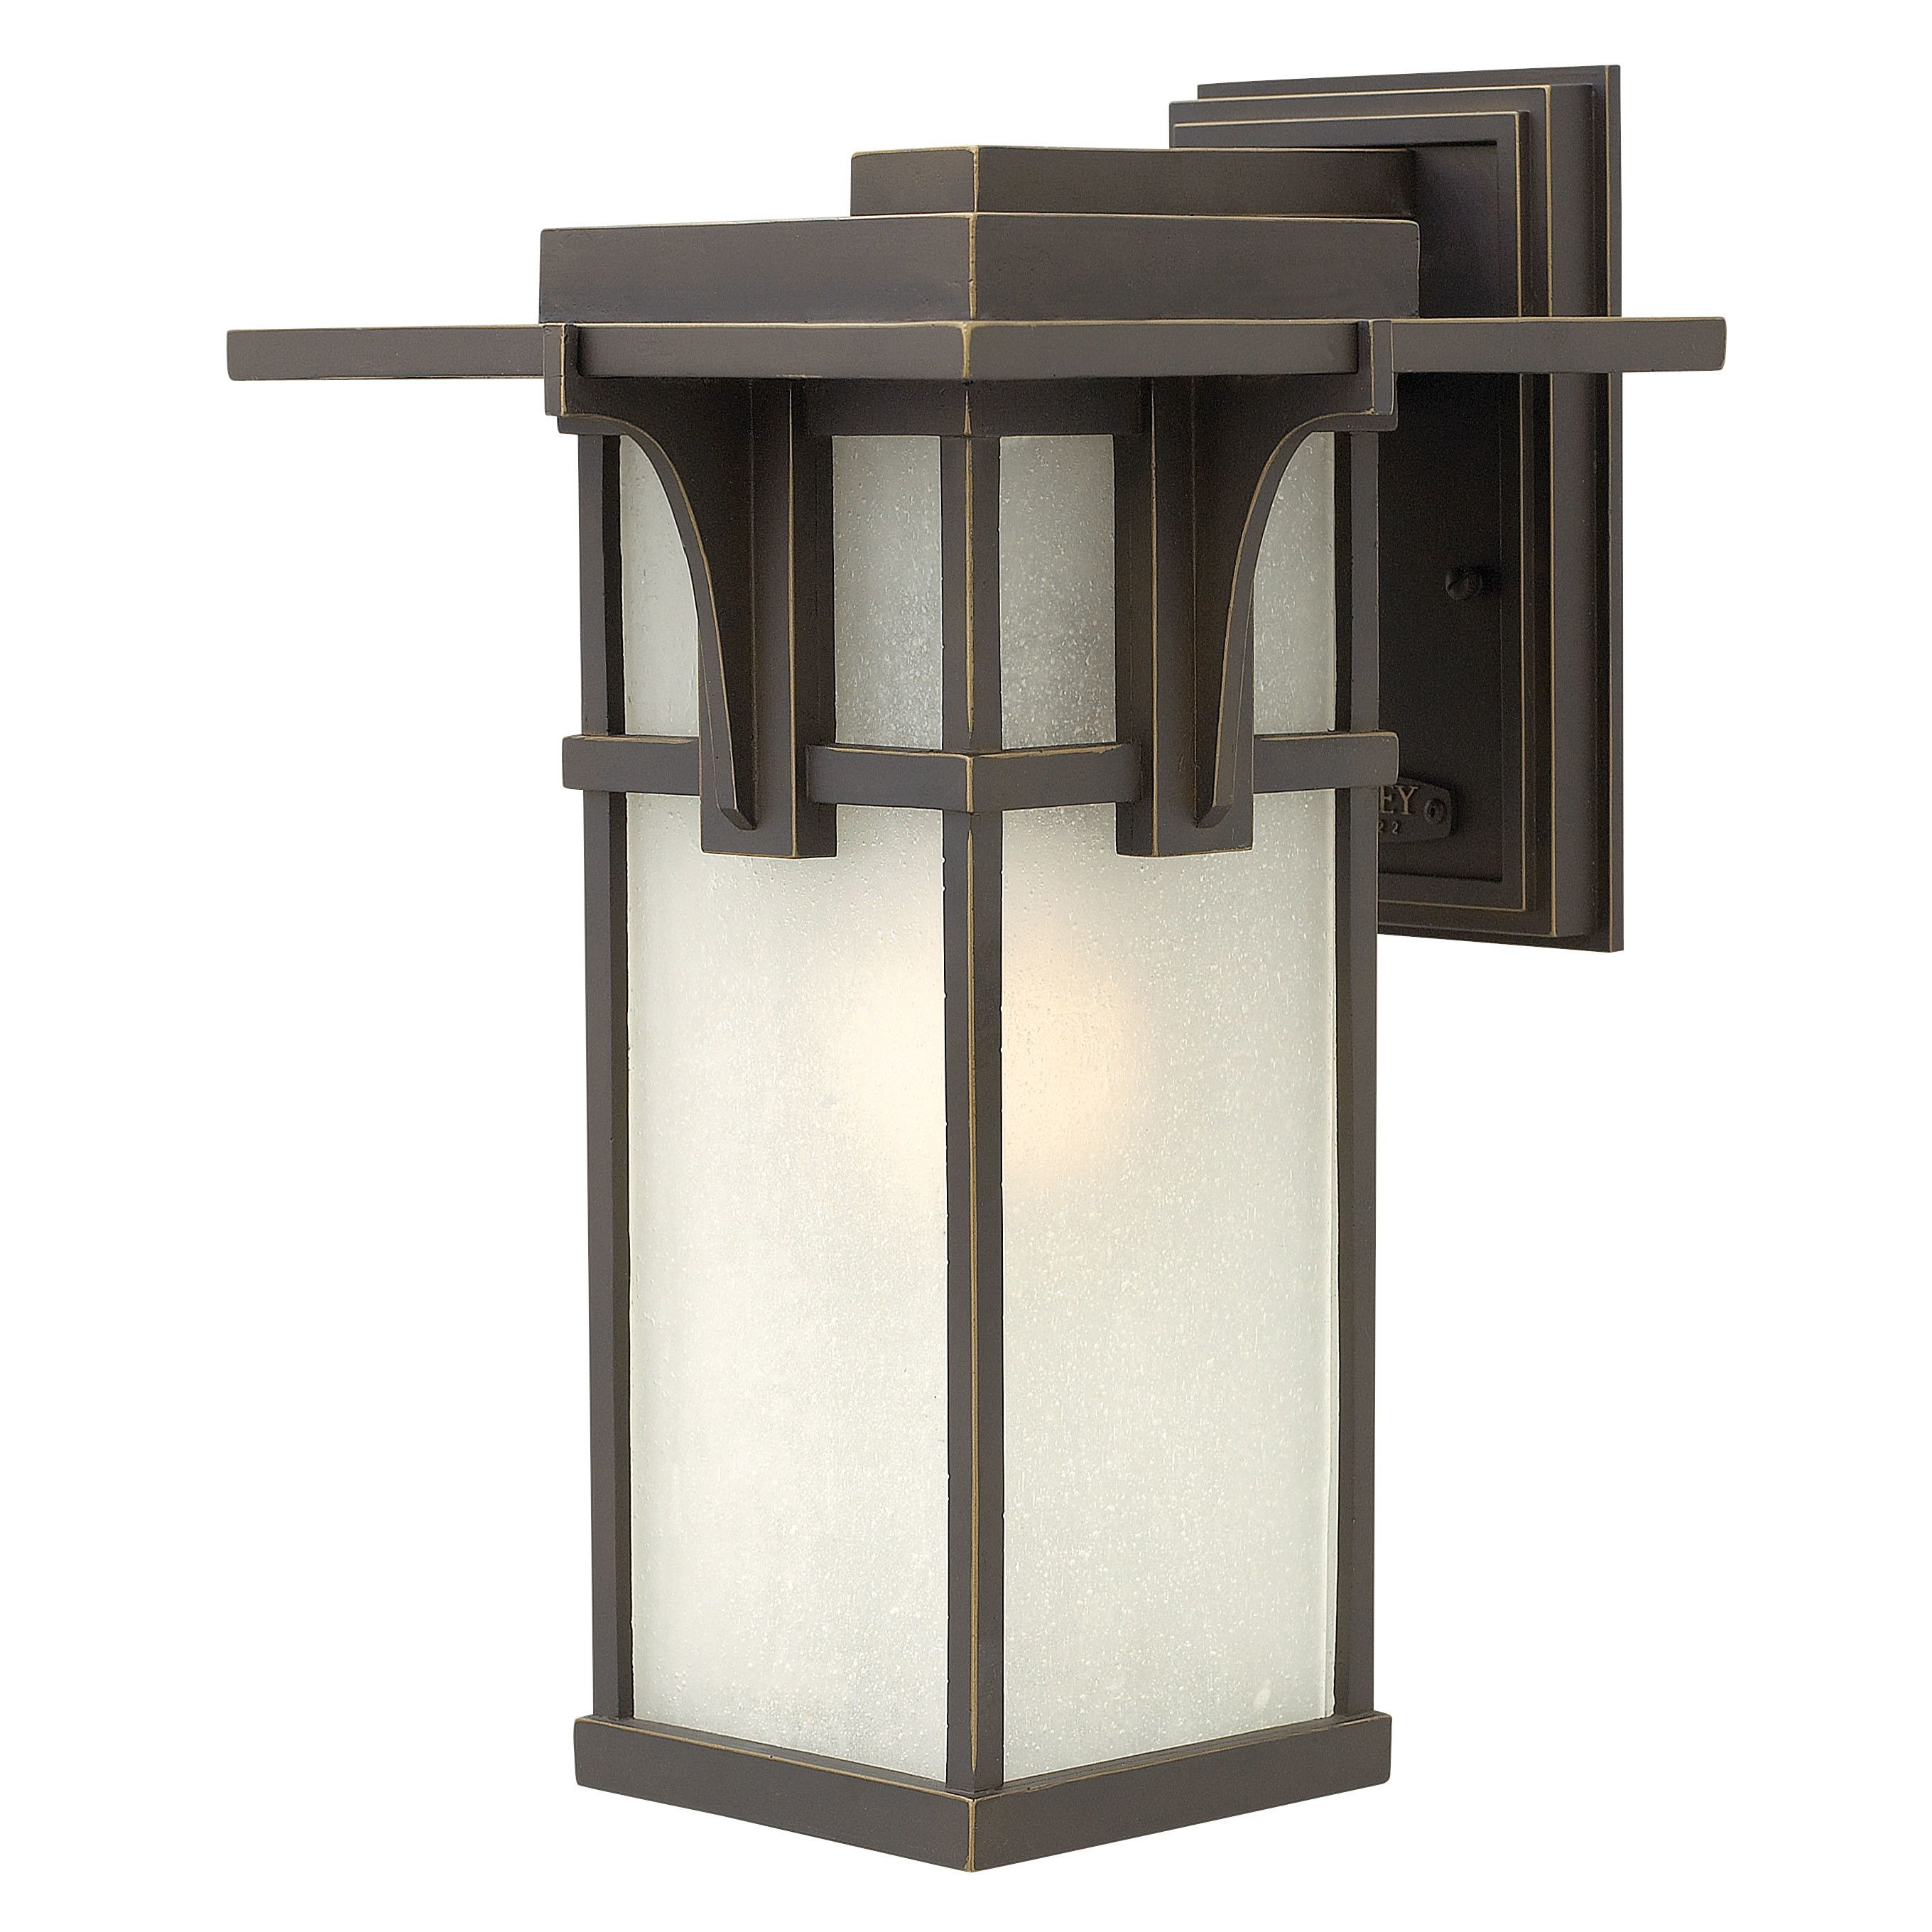 1950s exterior lighting google search httpsgoogle manhattan oil rubbed bronze 15 inch one light outdoor lantern hinkley wall mounted outdo arubaitofo Image collections